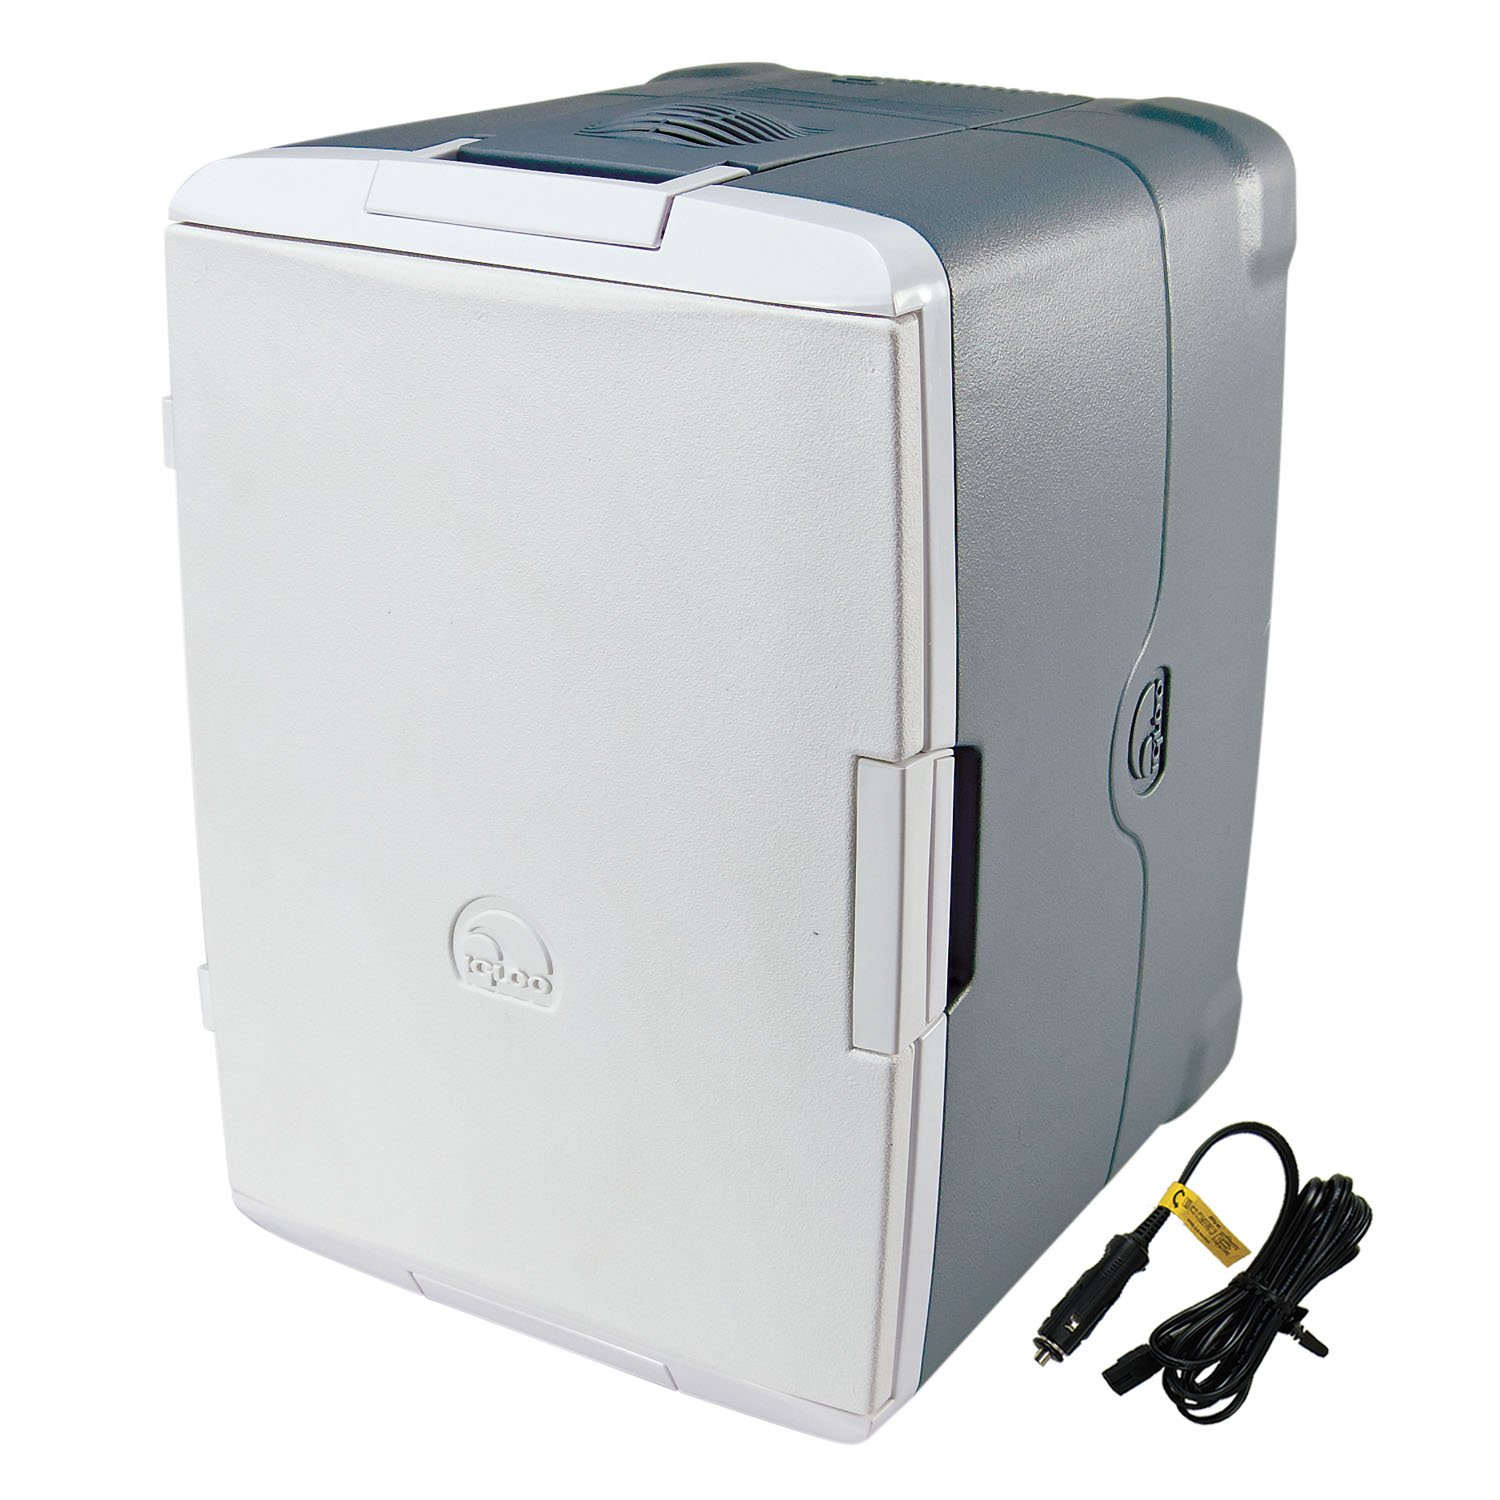 71iFwWY3oHL._SL1500_ amazon com igloo 40375 iceless 40 quart with 110 volt converter  at reclaimingppi.co